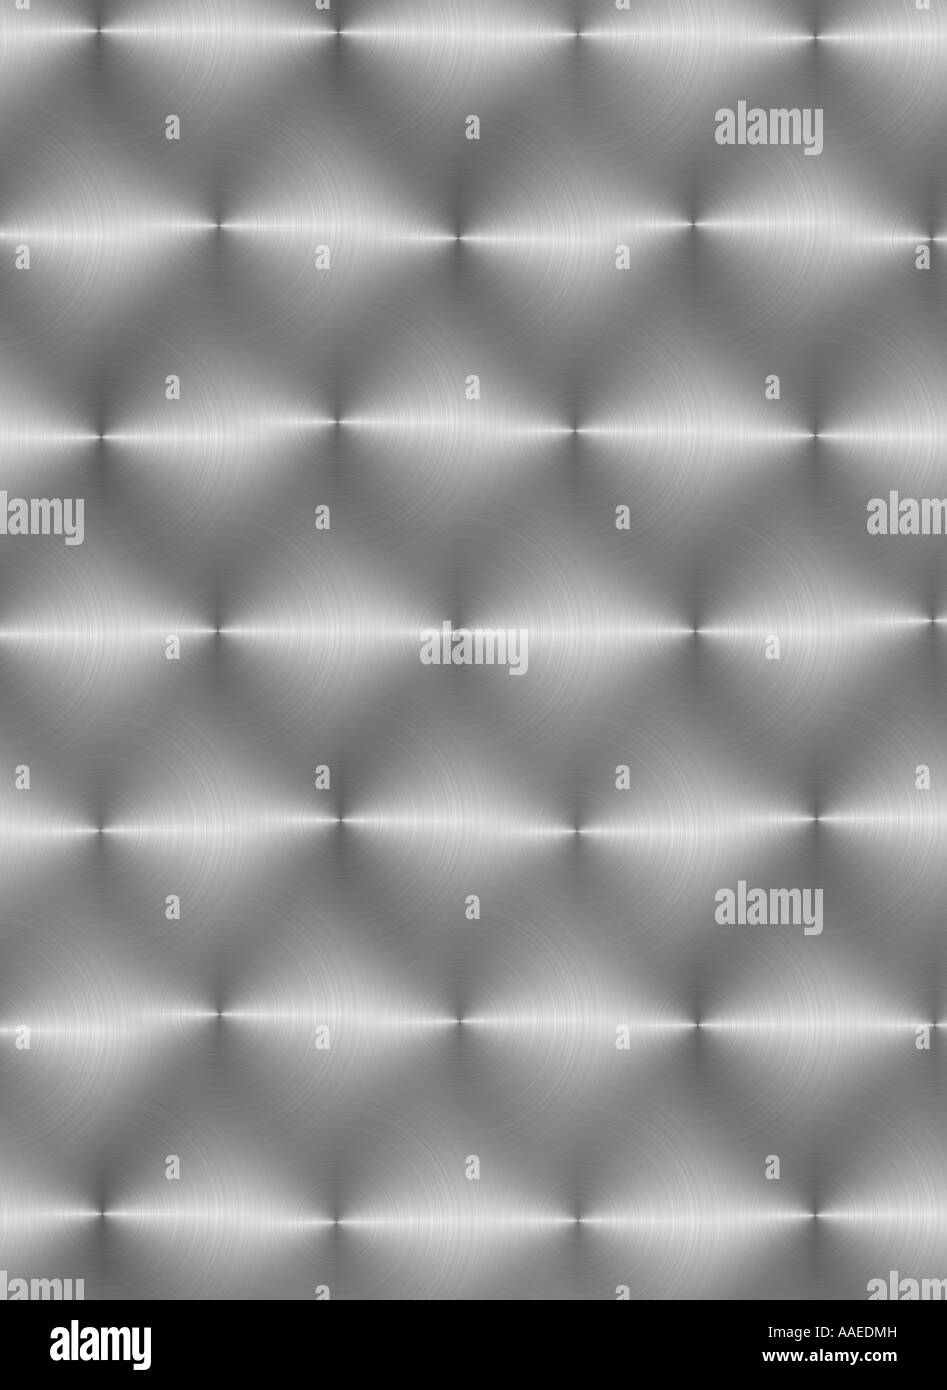 Steel surface - Stock Image